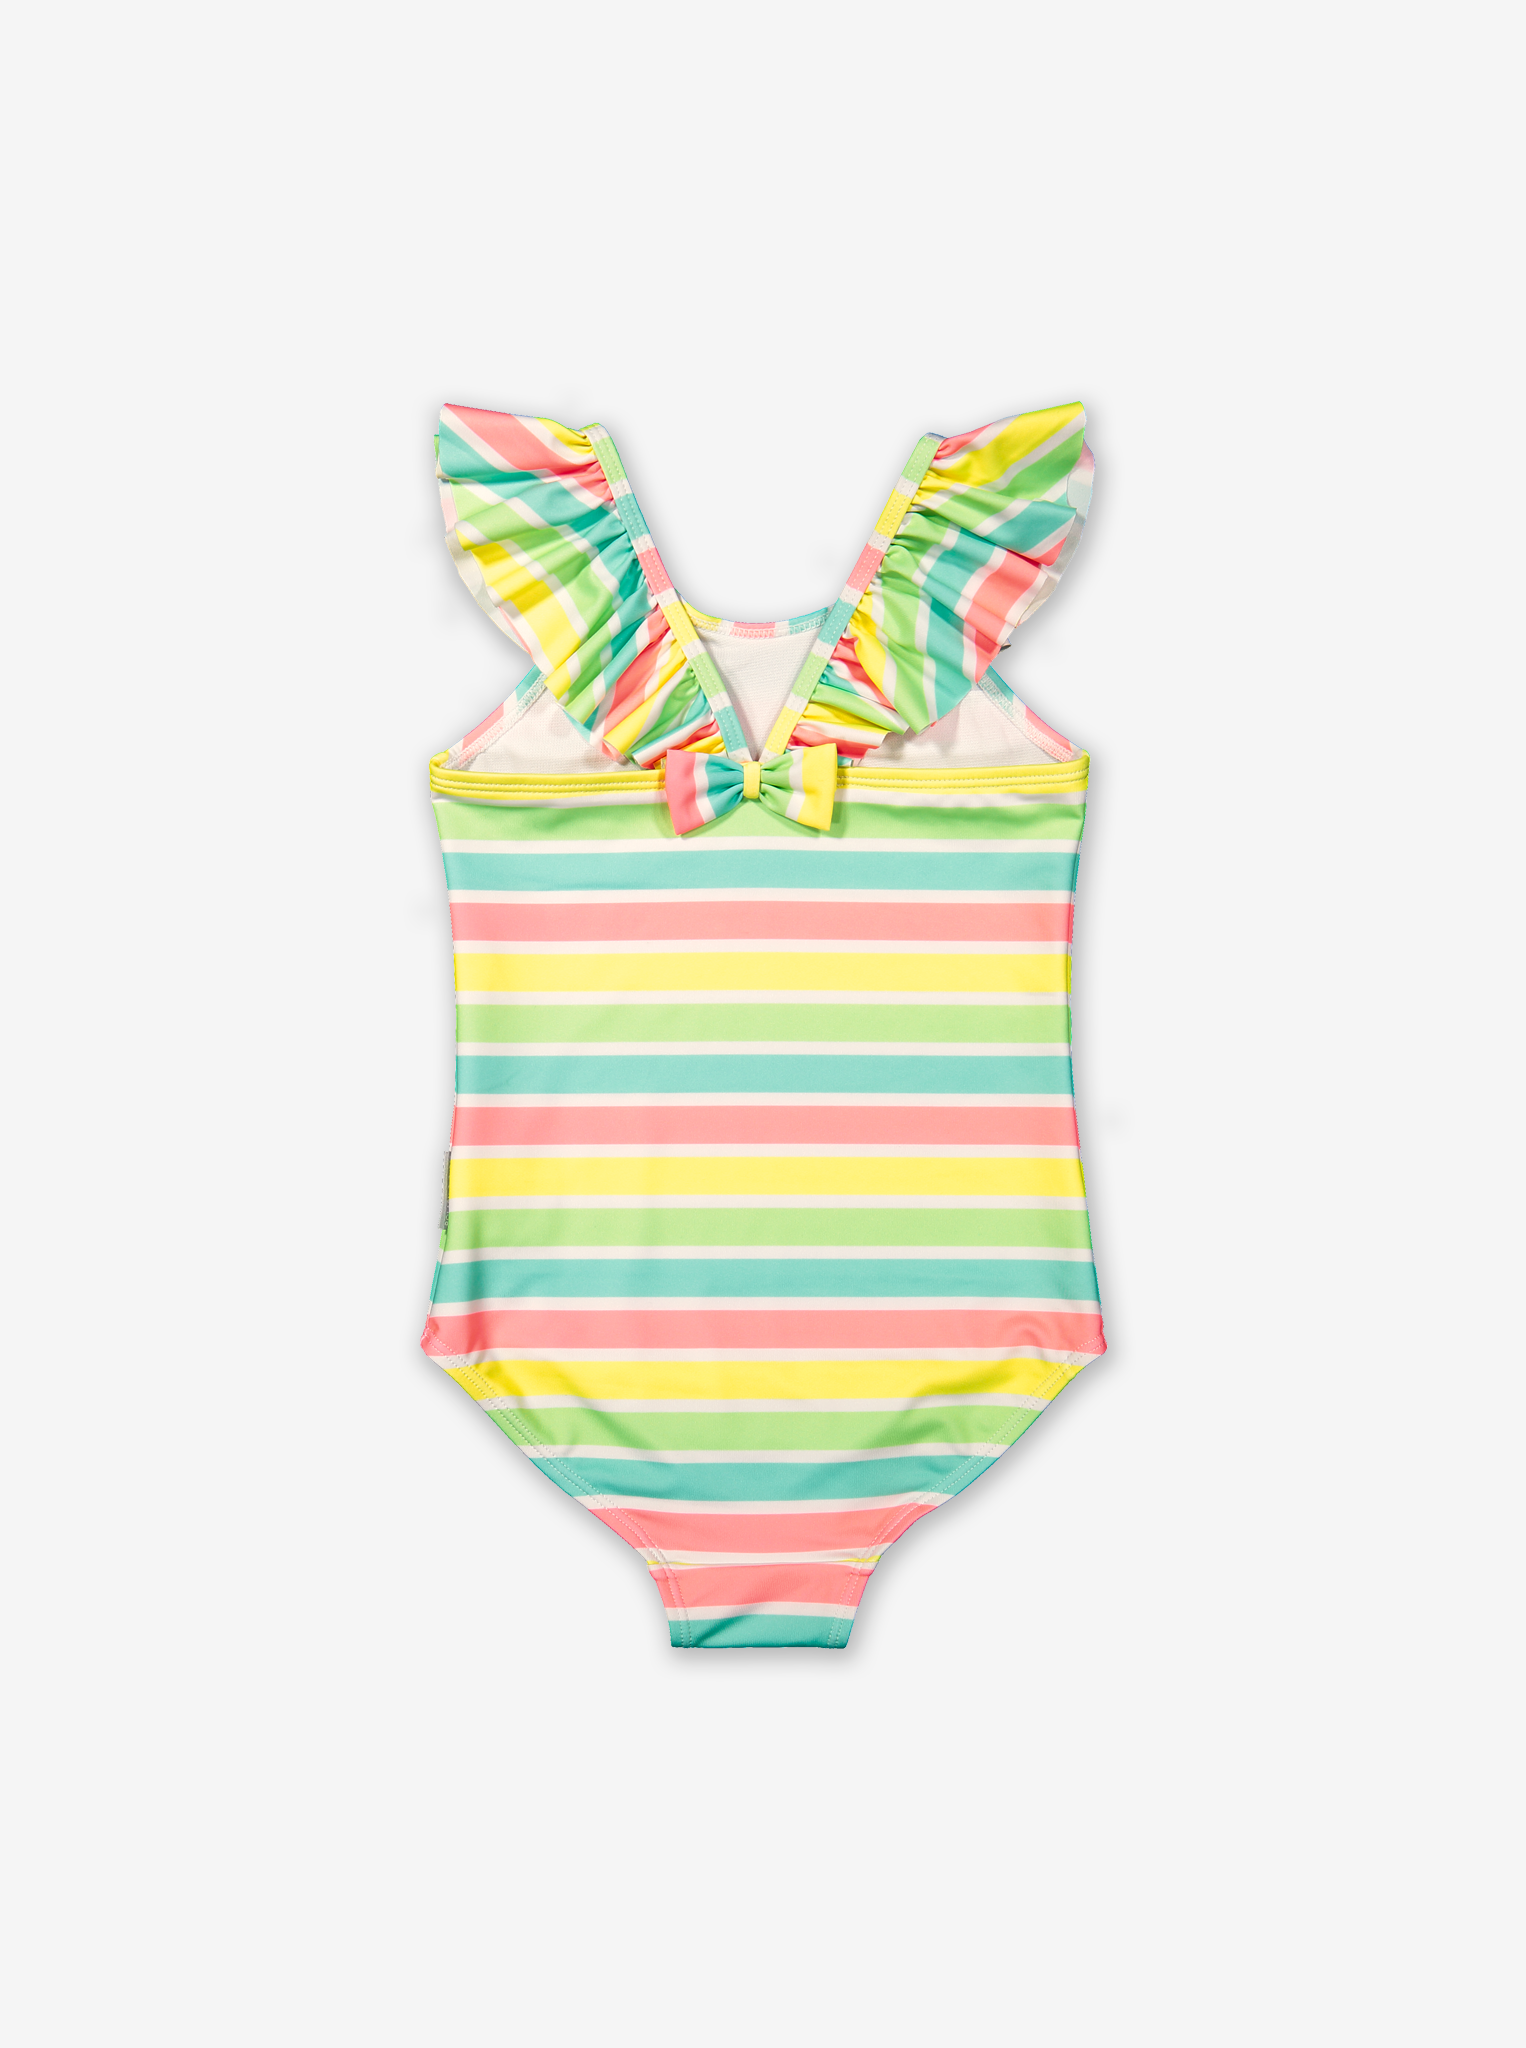 Stripe swimsuit-Girl-1-6y-Pink